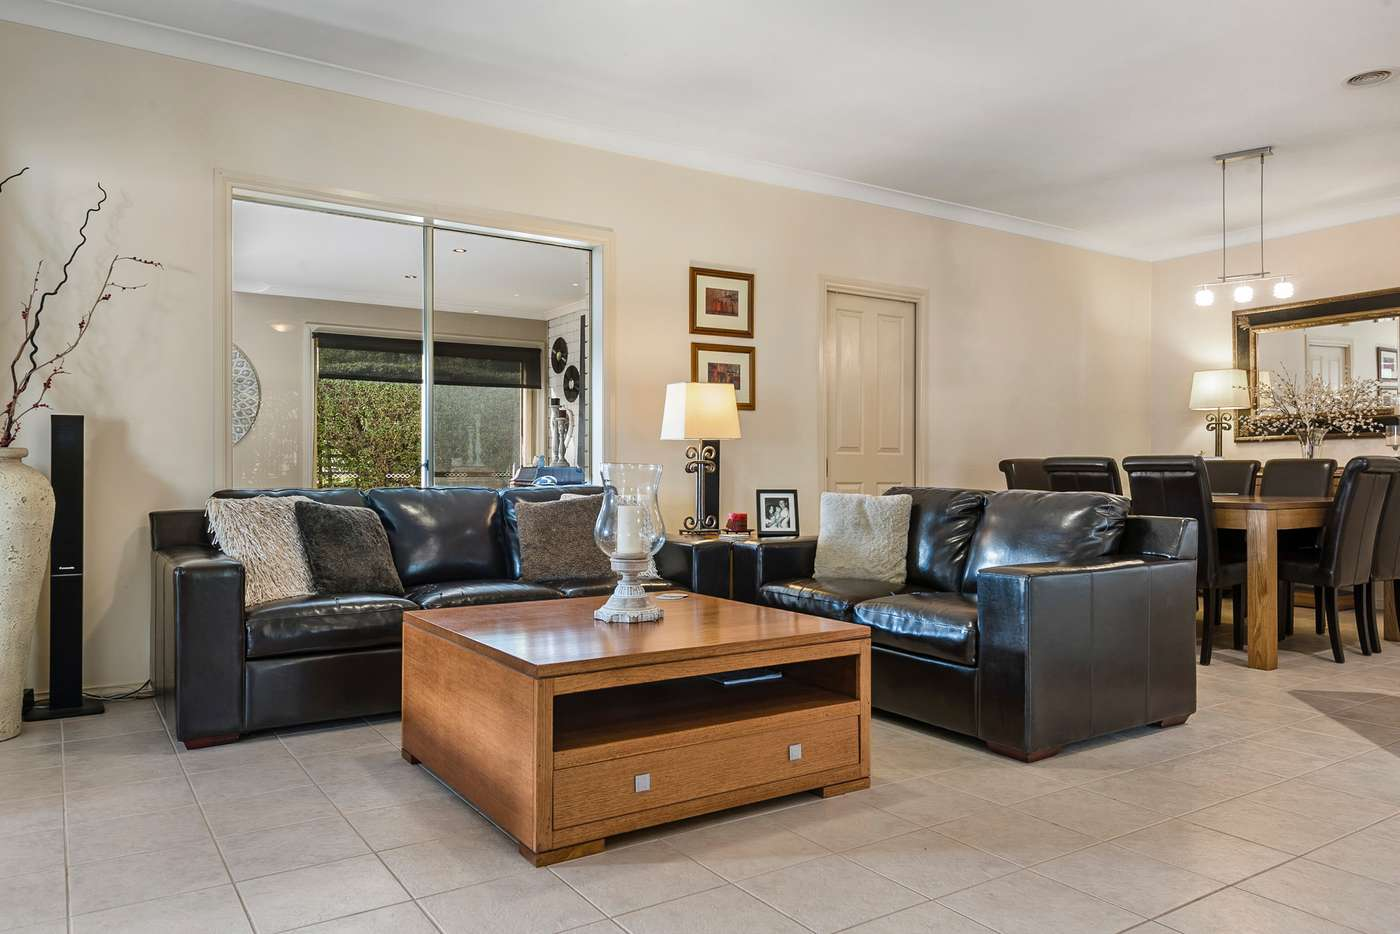 Fifth view of Homely house listing, 6 Stamford Close, Bacchus Marsh VIC 3340